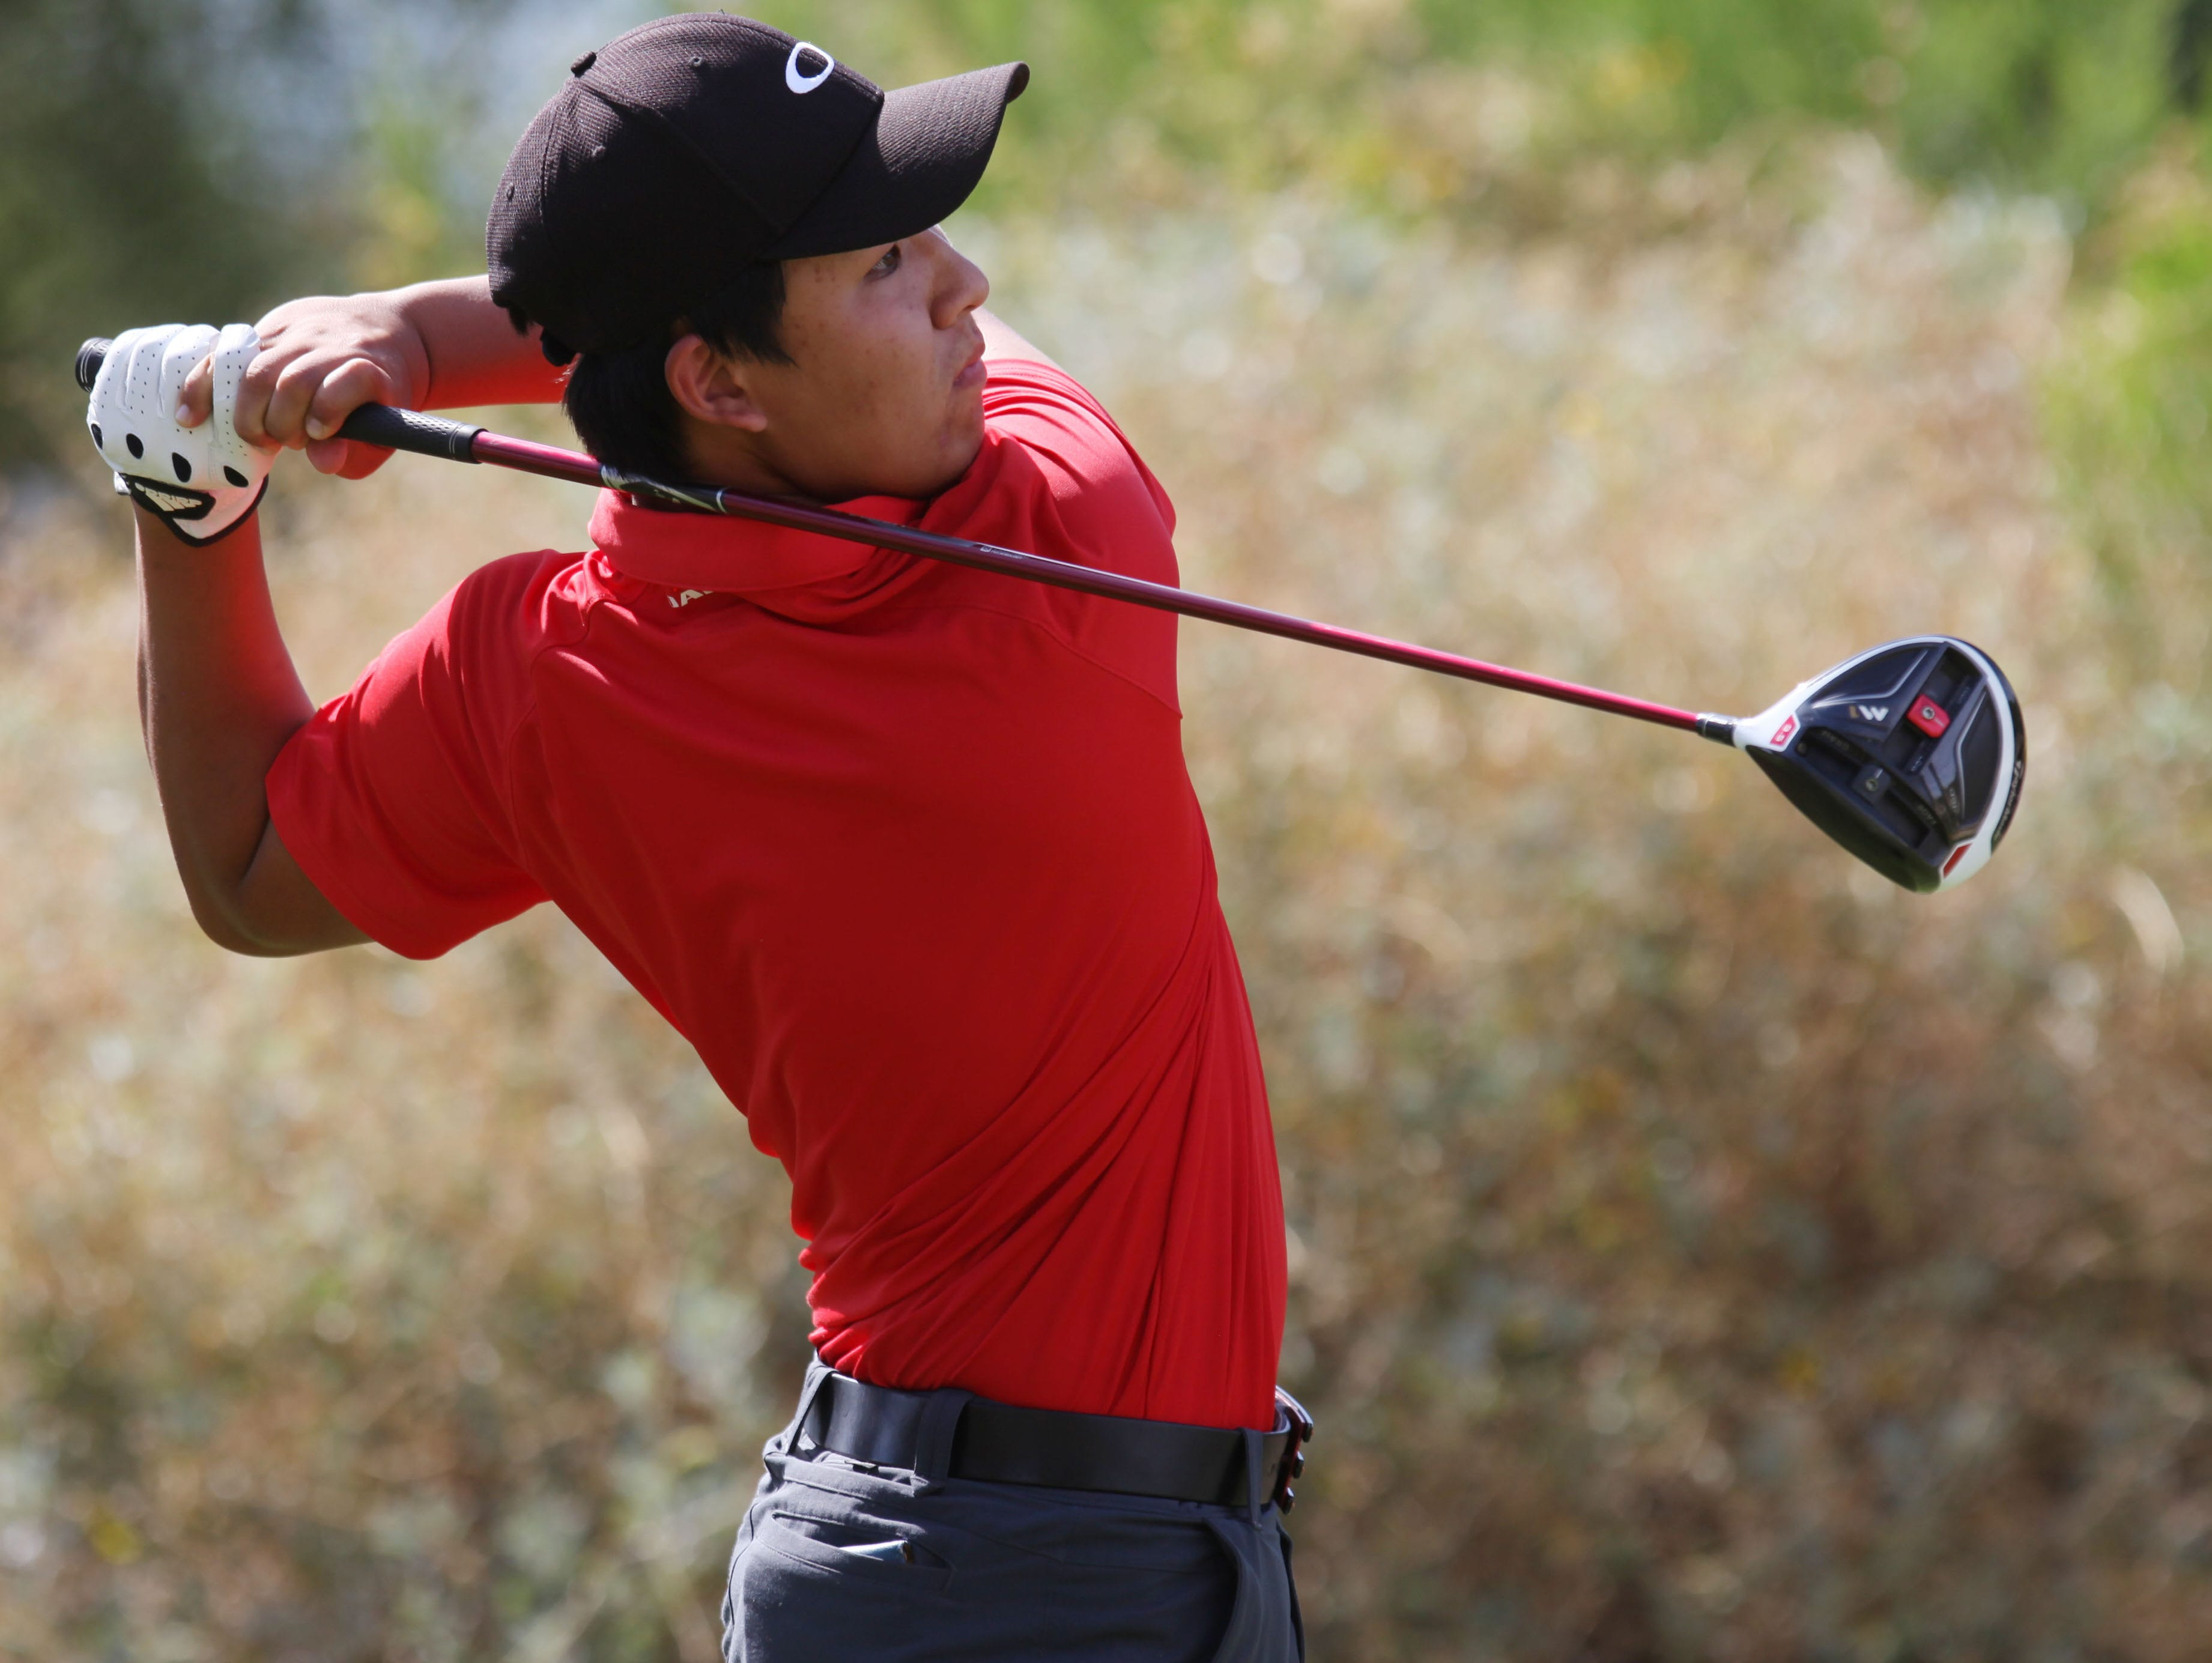 Palm Desert High School's Derrek Liu and his team hosted La Quinta High School's golf team at Desert Willow Country Club in Palm Desert on April 21, 2016.